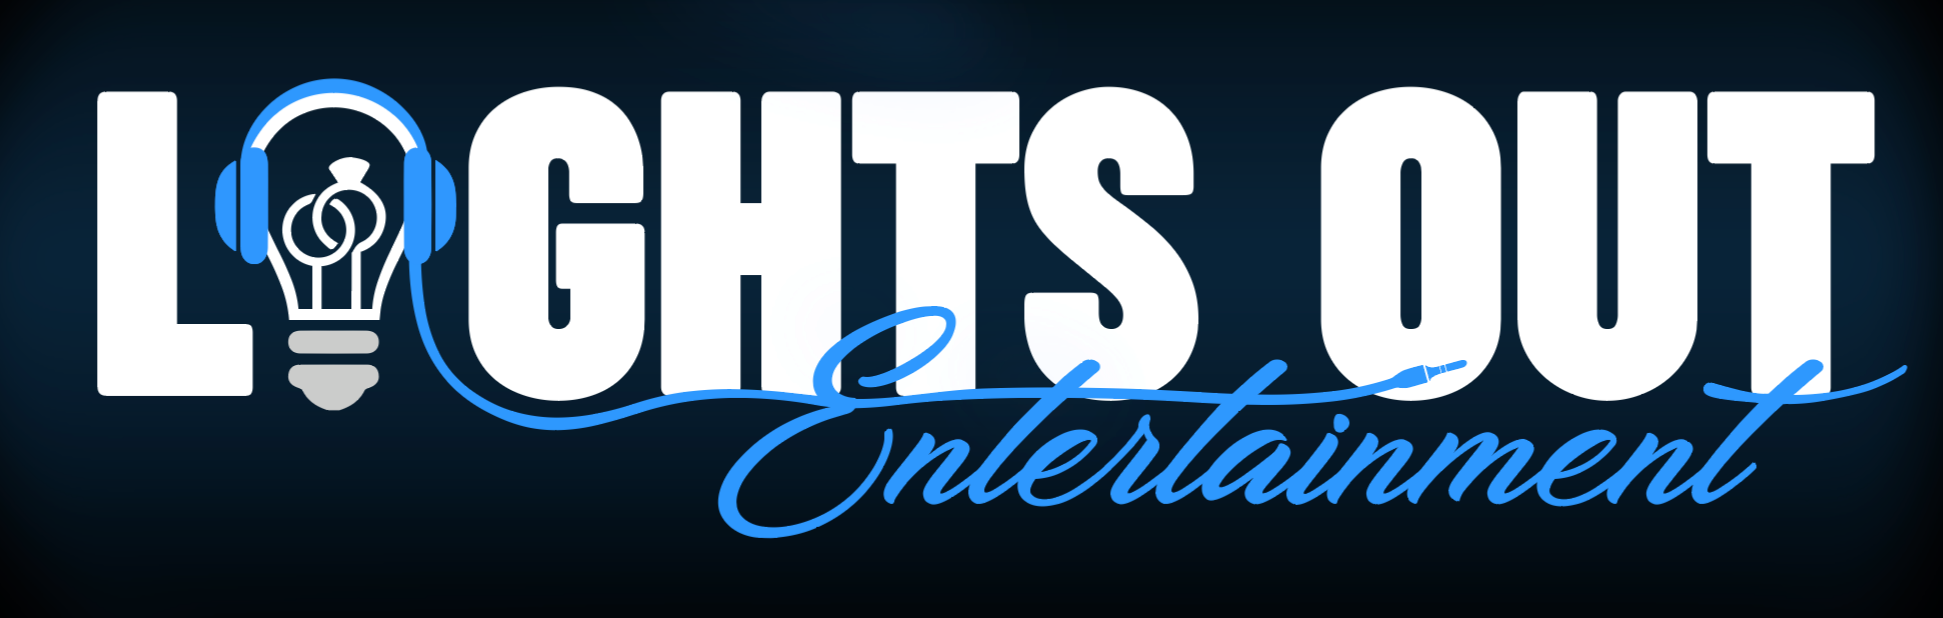 Lights Out Entertainment New Logo 2018 - 2022  Fun rated Wedding DJS